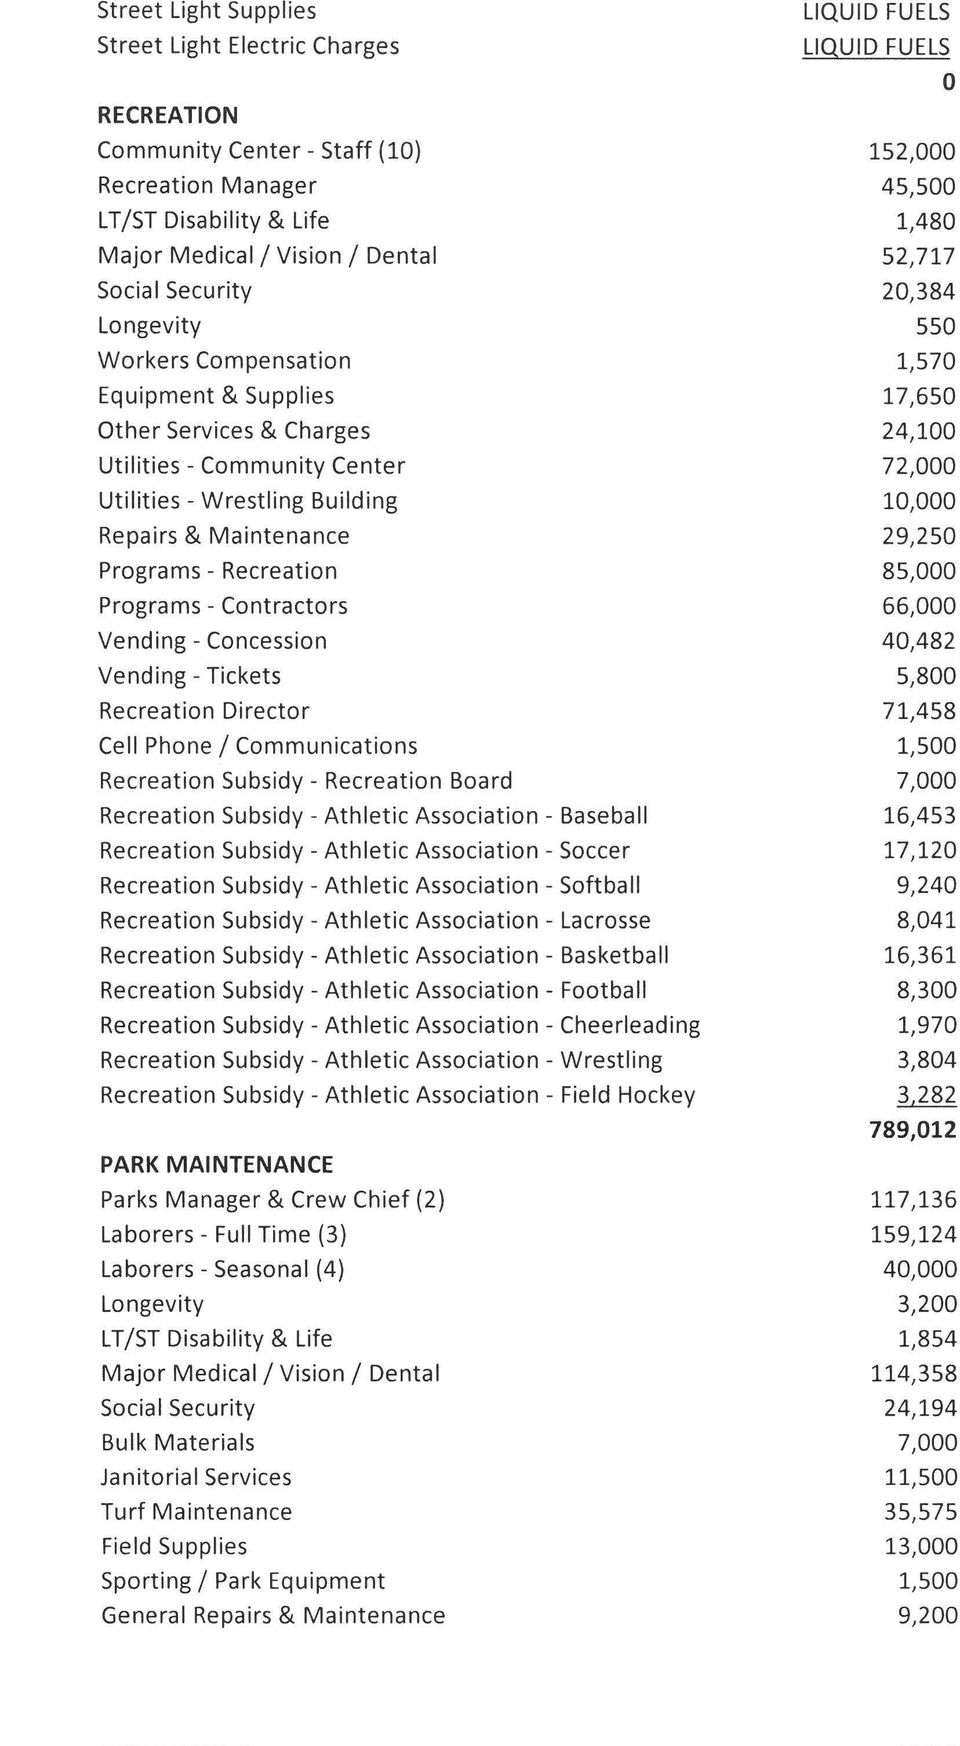 Subsidy- Recreation Board Recreation Subsidy- Athletic Association- Baseball Recreation Subsidy- Athletic Association- Soccer Recreation Subsidy- Athletic Association- Softball Recreation Subsidy -